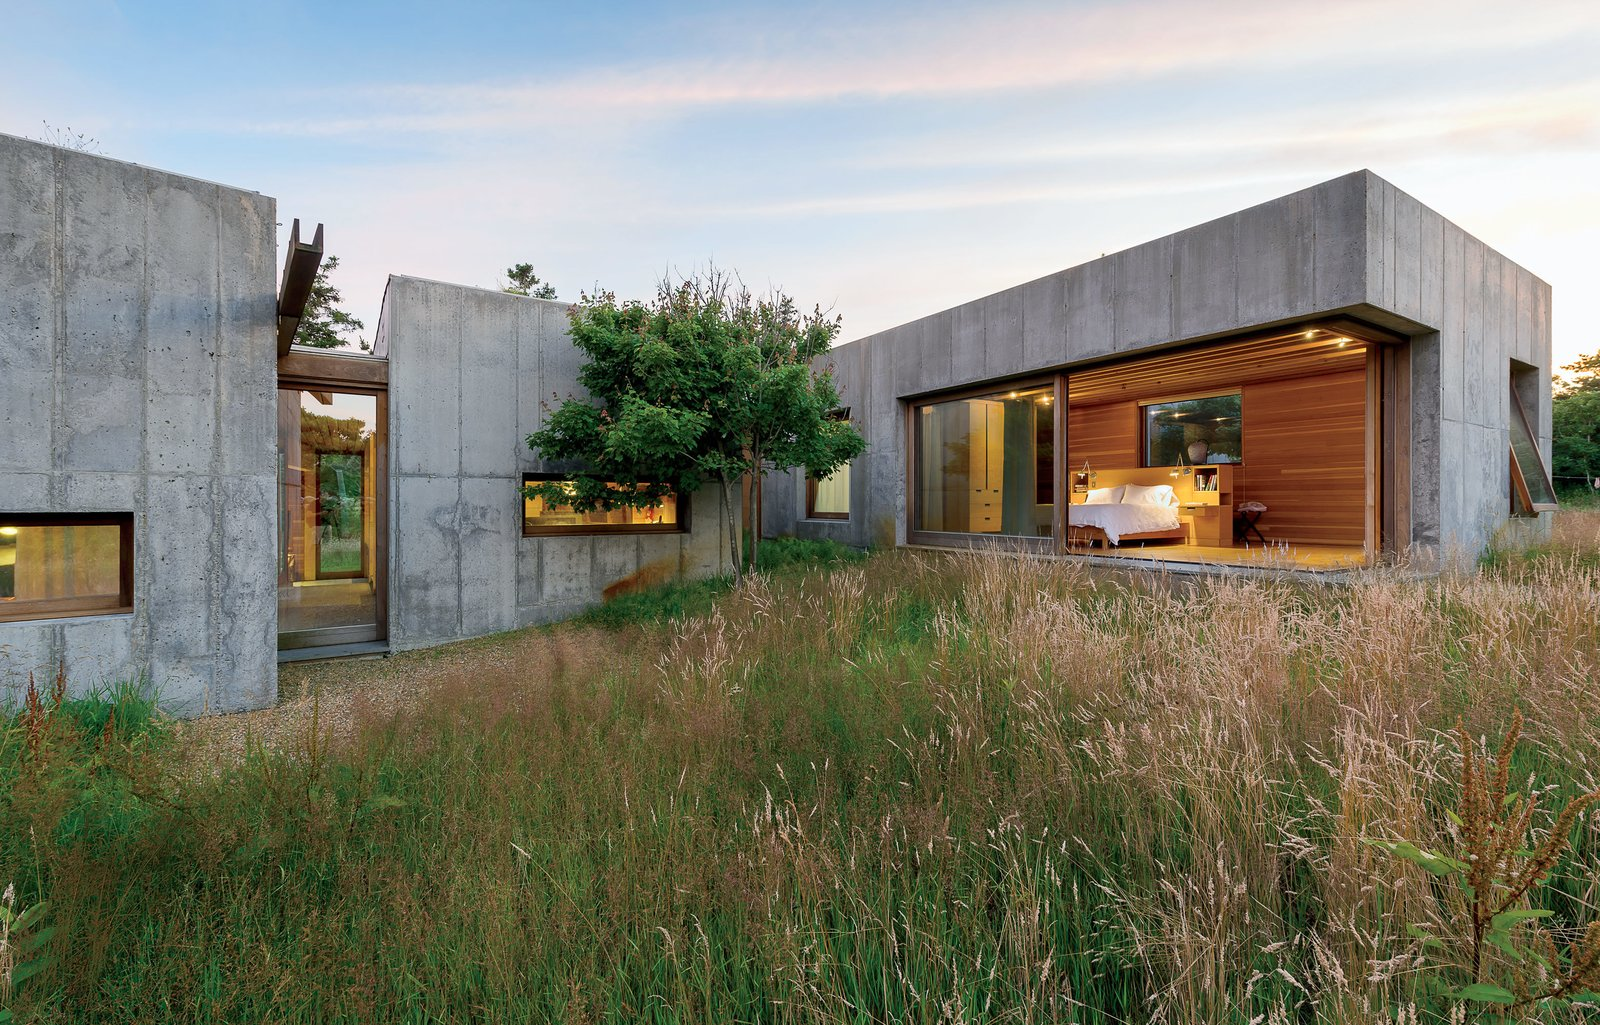 Articles about six concrete boxes make jaw dropping marthas vineyard home on Dwell.com